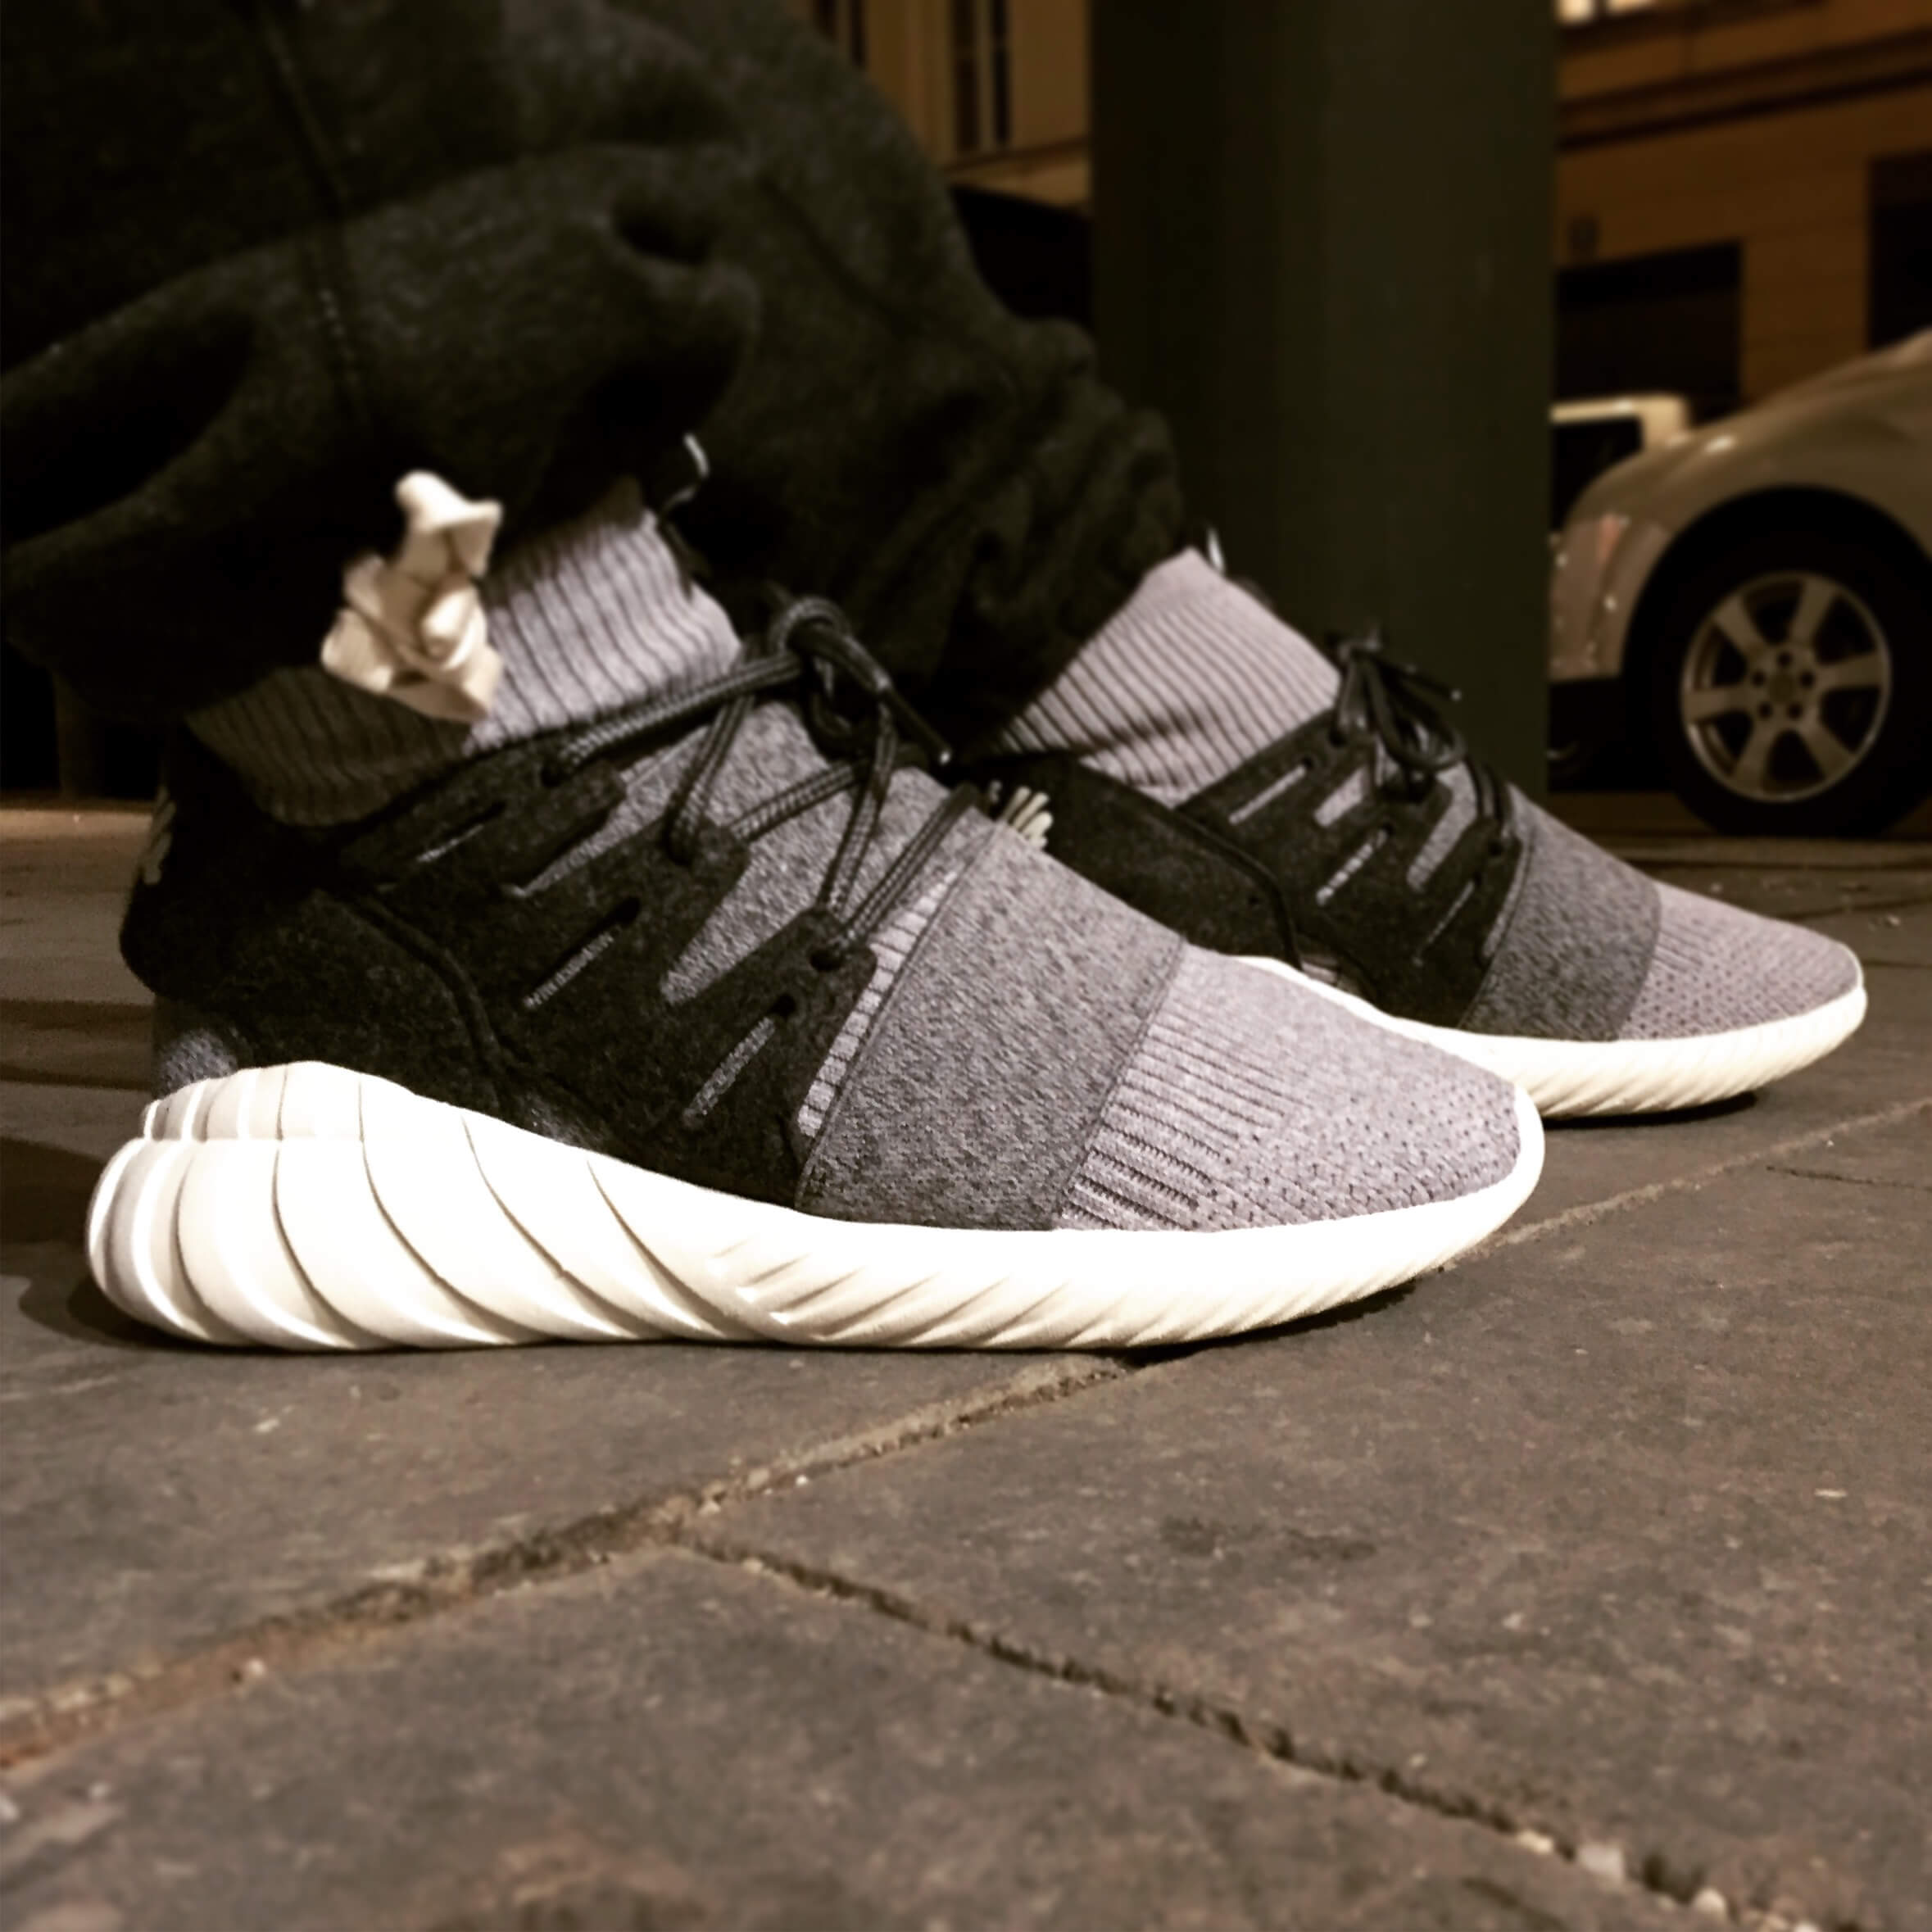 Adidas Originals Tubular Nova Primeknit Black / White Kith NYC